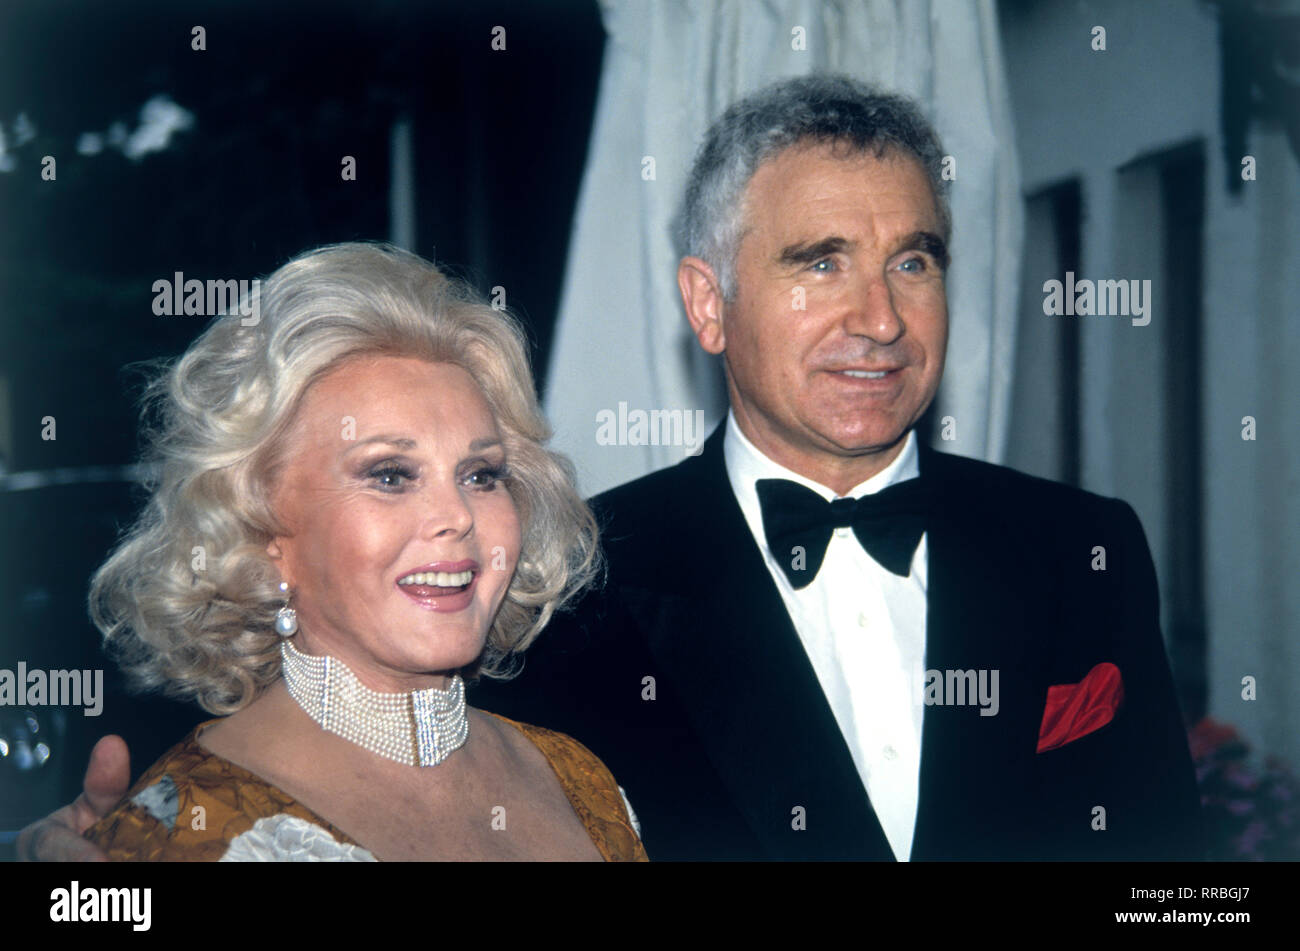 Zsa Zsa Gabor High Resolution Stock Photography And Images Alamy